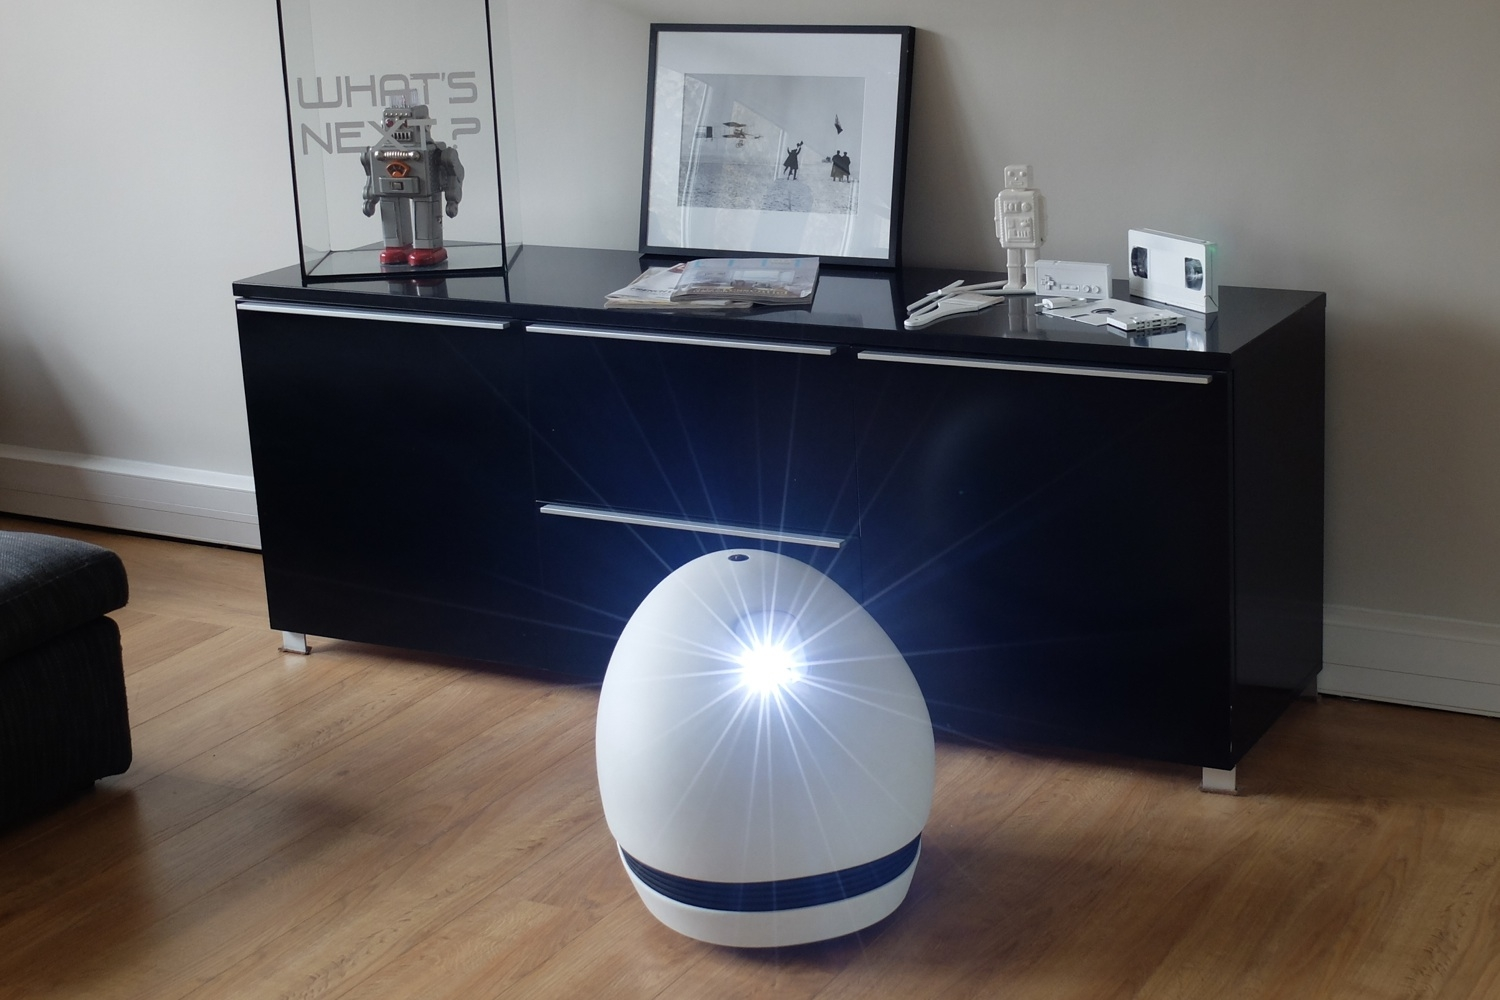 A Real Life R2D2 For Your Home